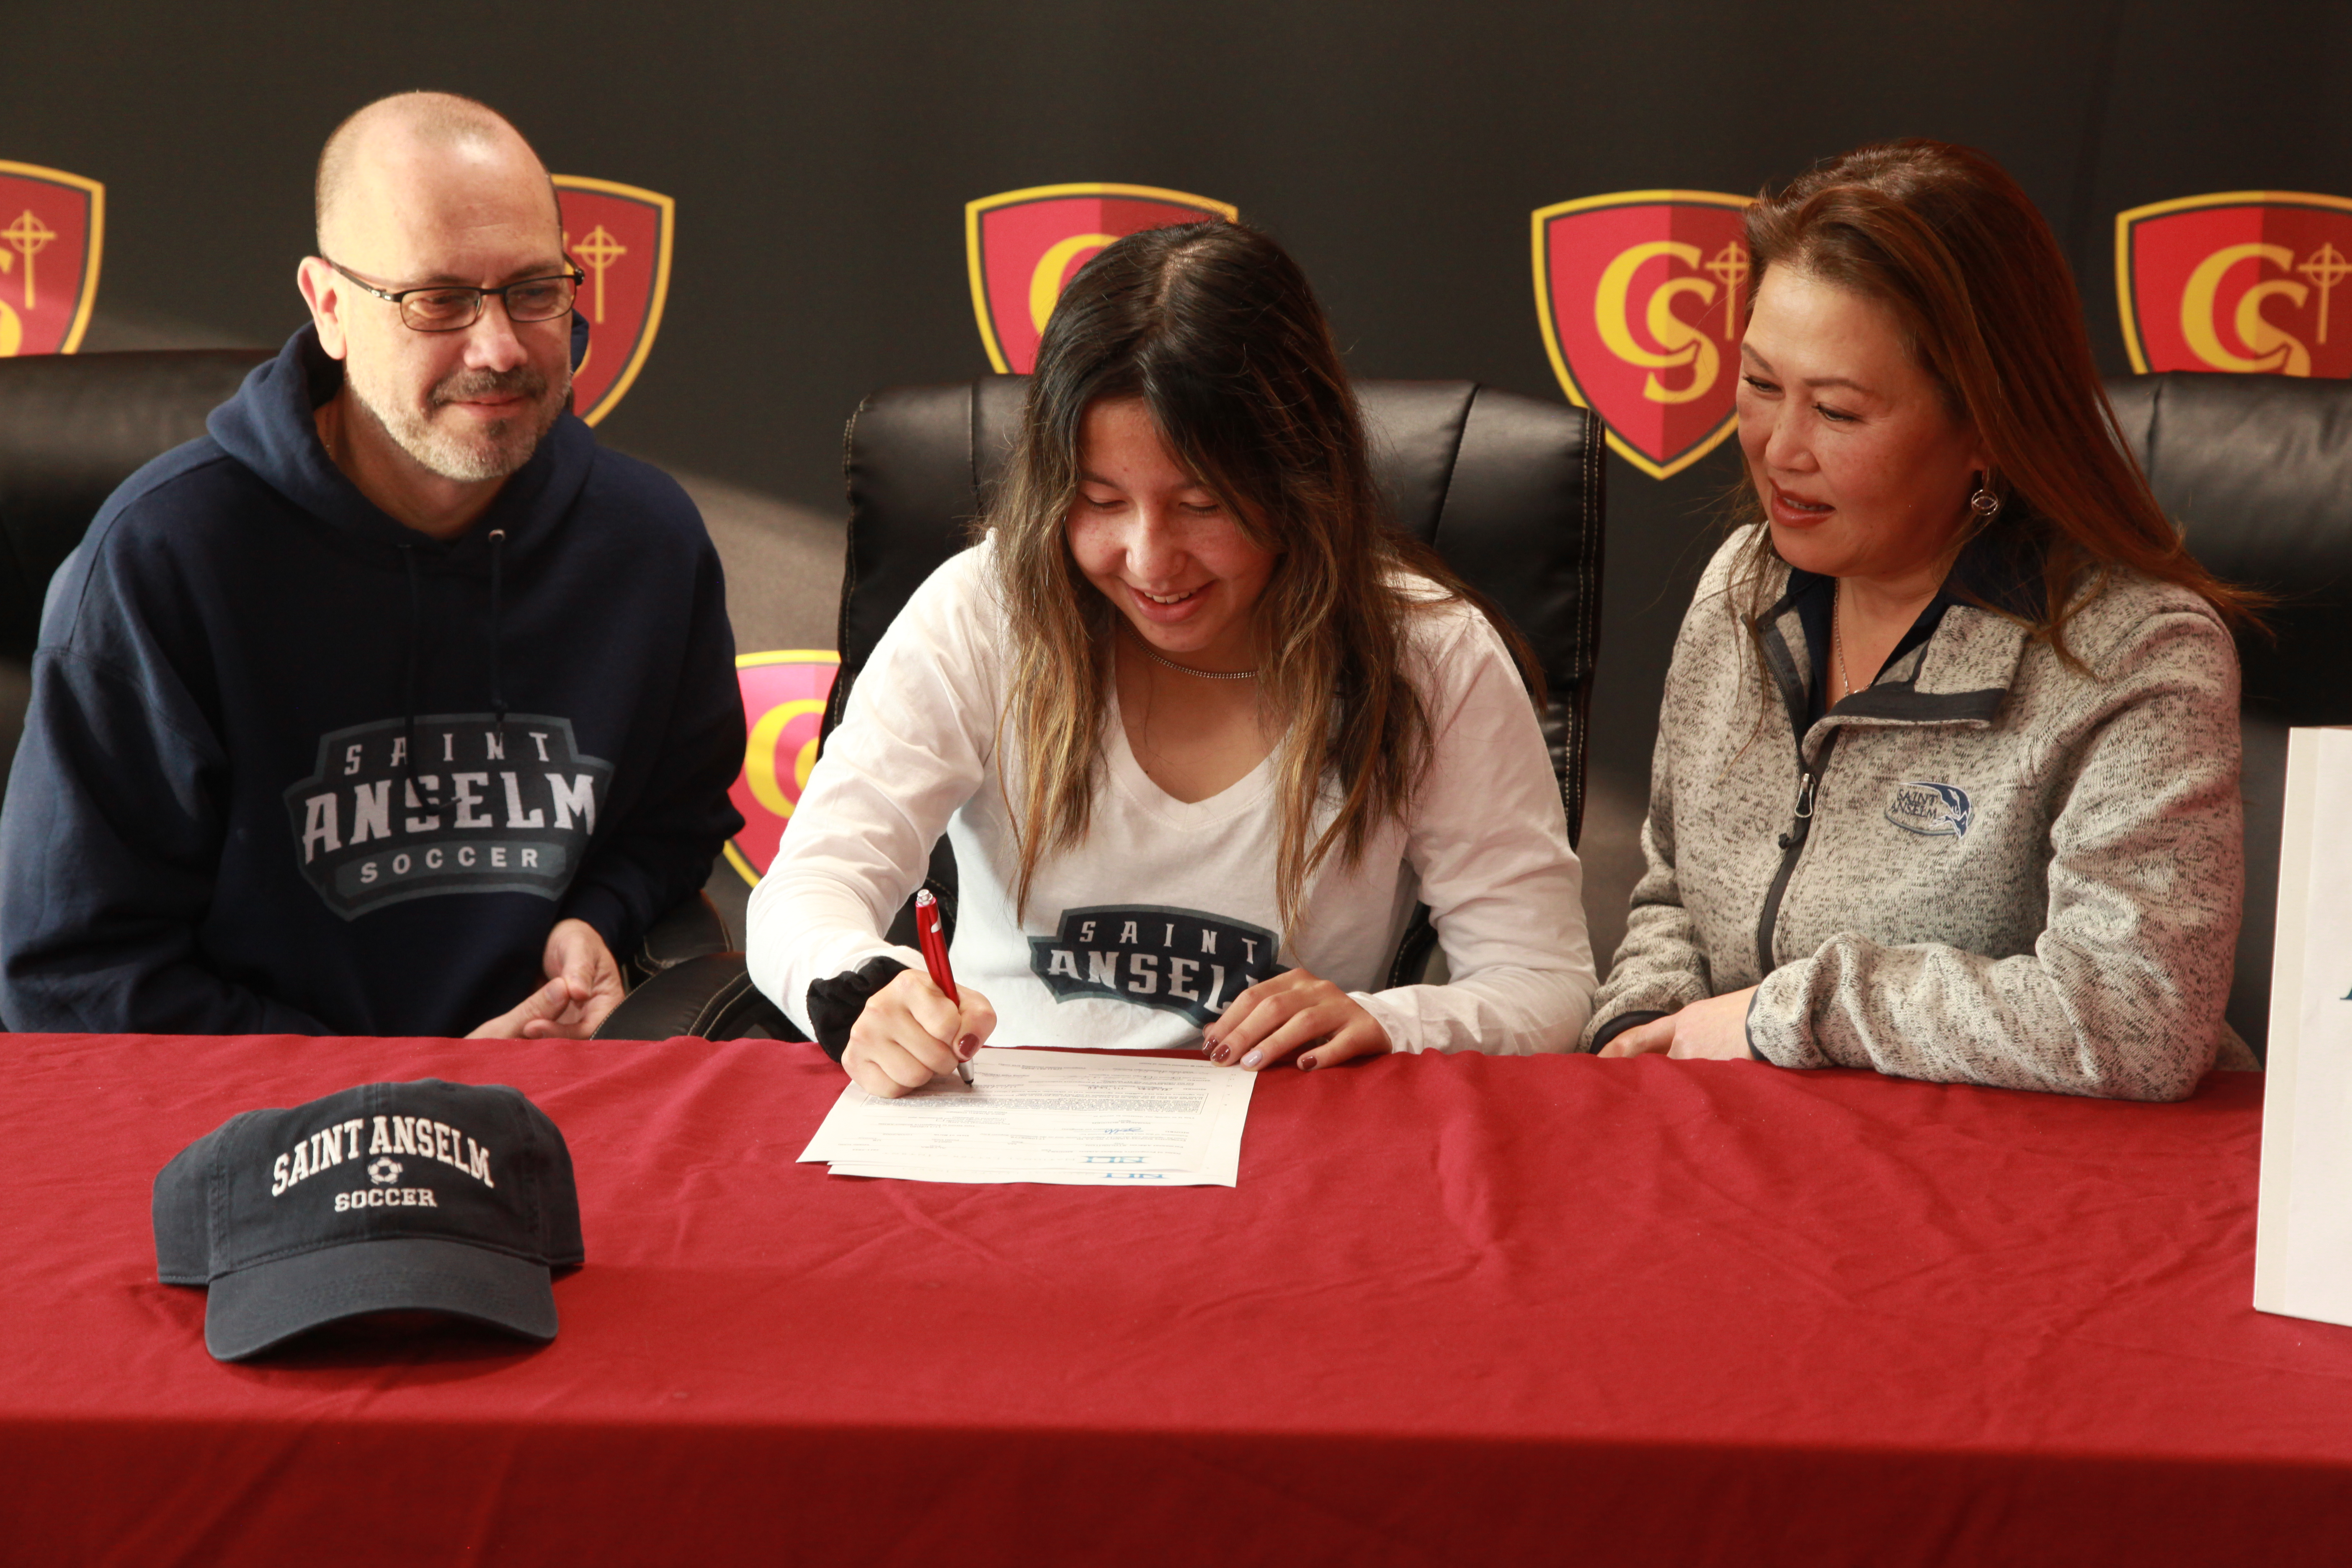 Spellman student Alyssa McColl signs with Saint Anselm to play Division II Soccer!